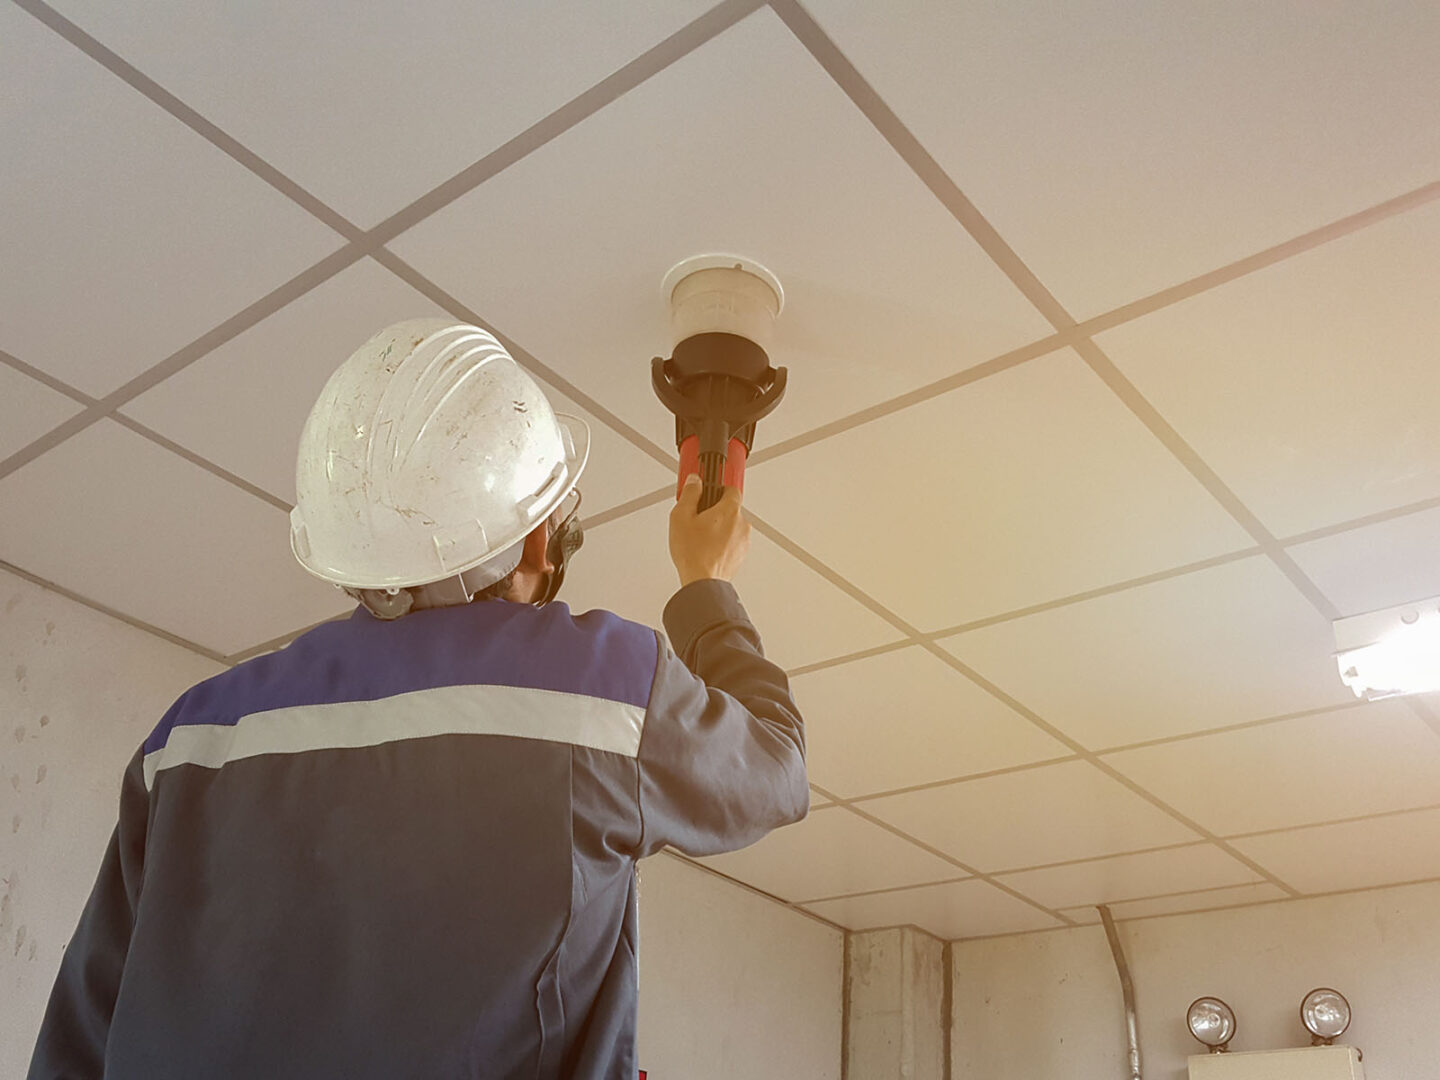 Fire detection within hard facilities management upgrading adds exponential value